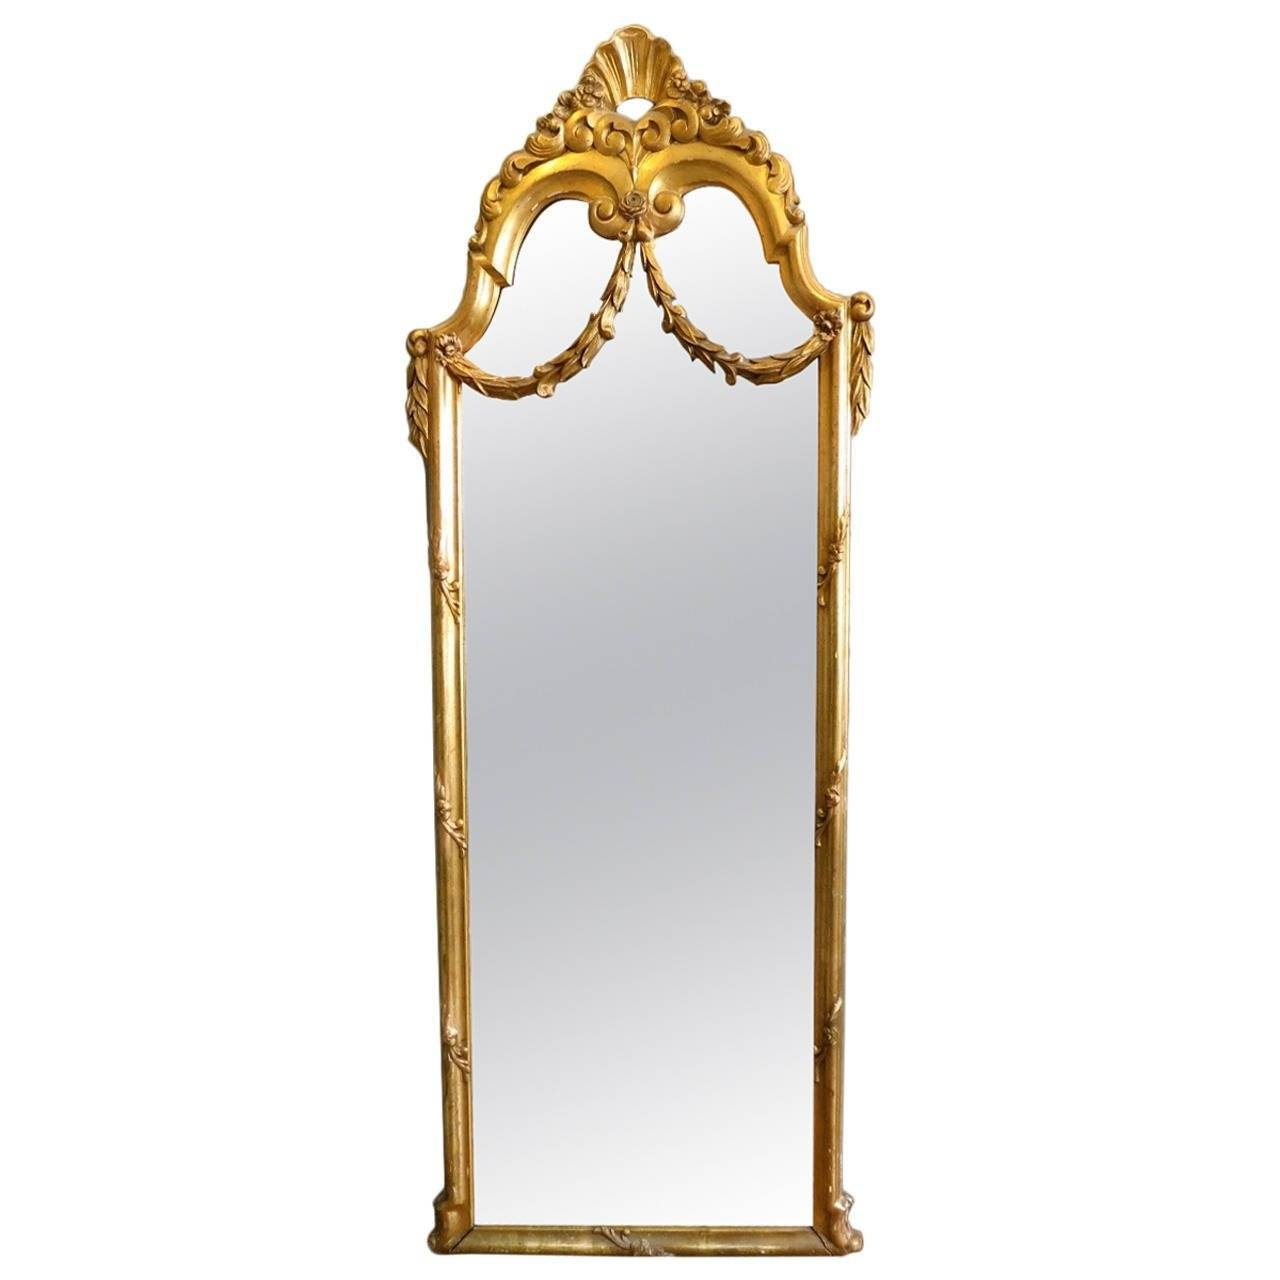 Antique French Gold Gilt Floor Standing Mirror At 1Stdibs intended for Full Length French Mirrors (Image 3 of 25)